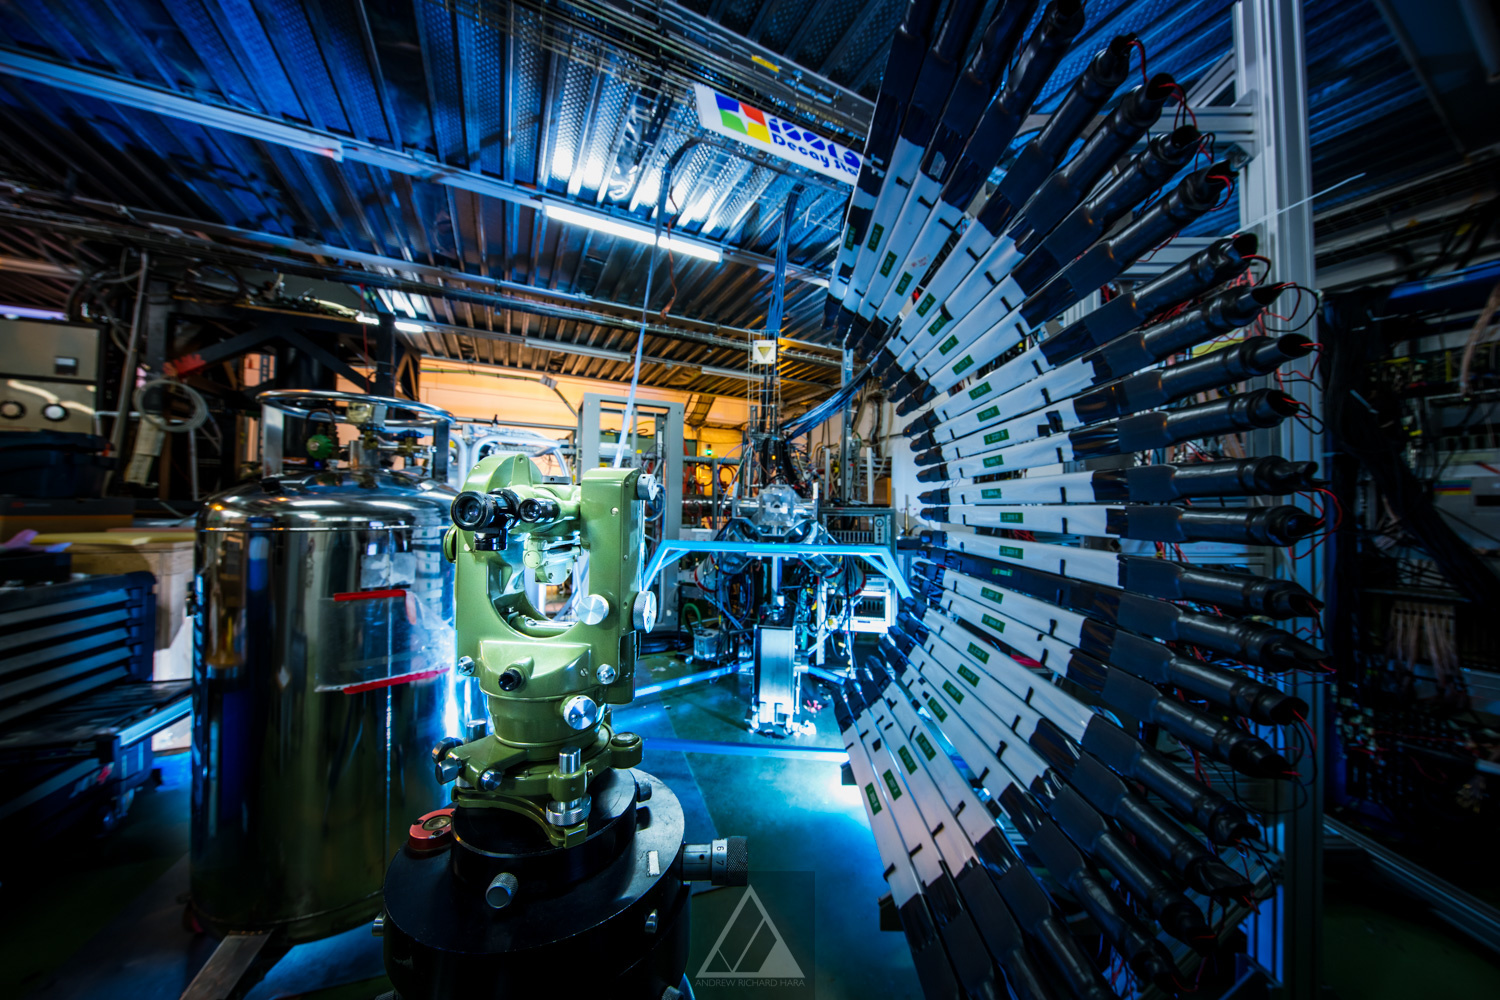 A particle detector for radioactive isotopes at CERN - Photo by Andrew Hara